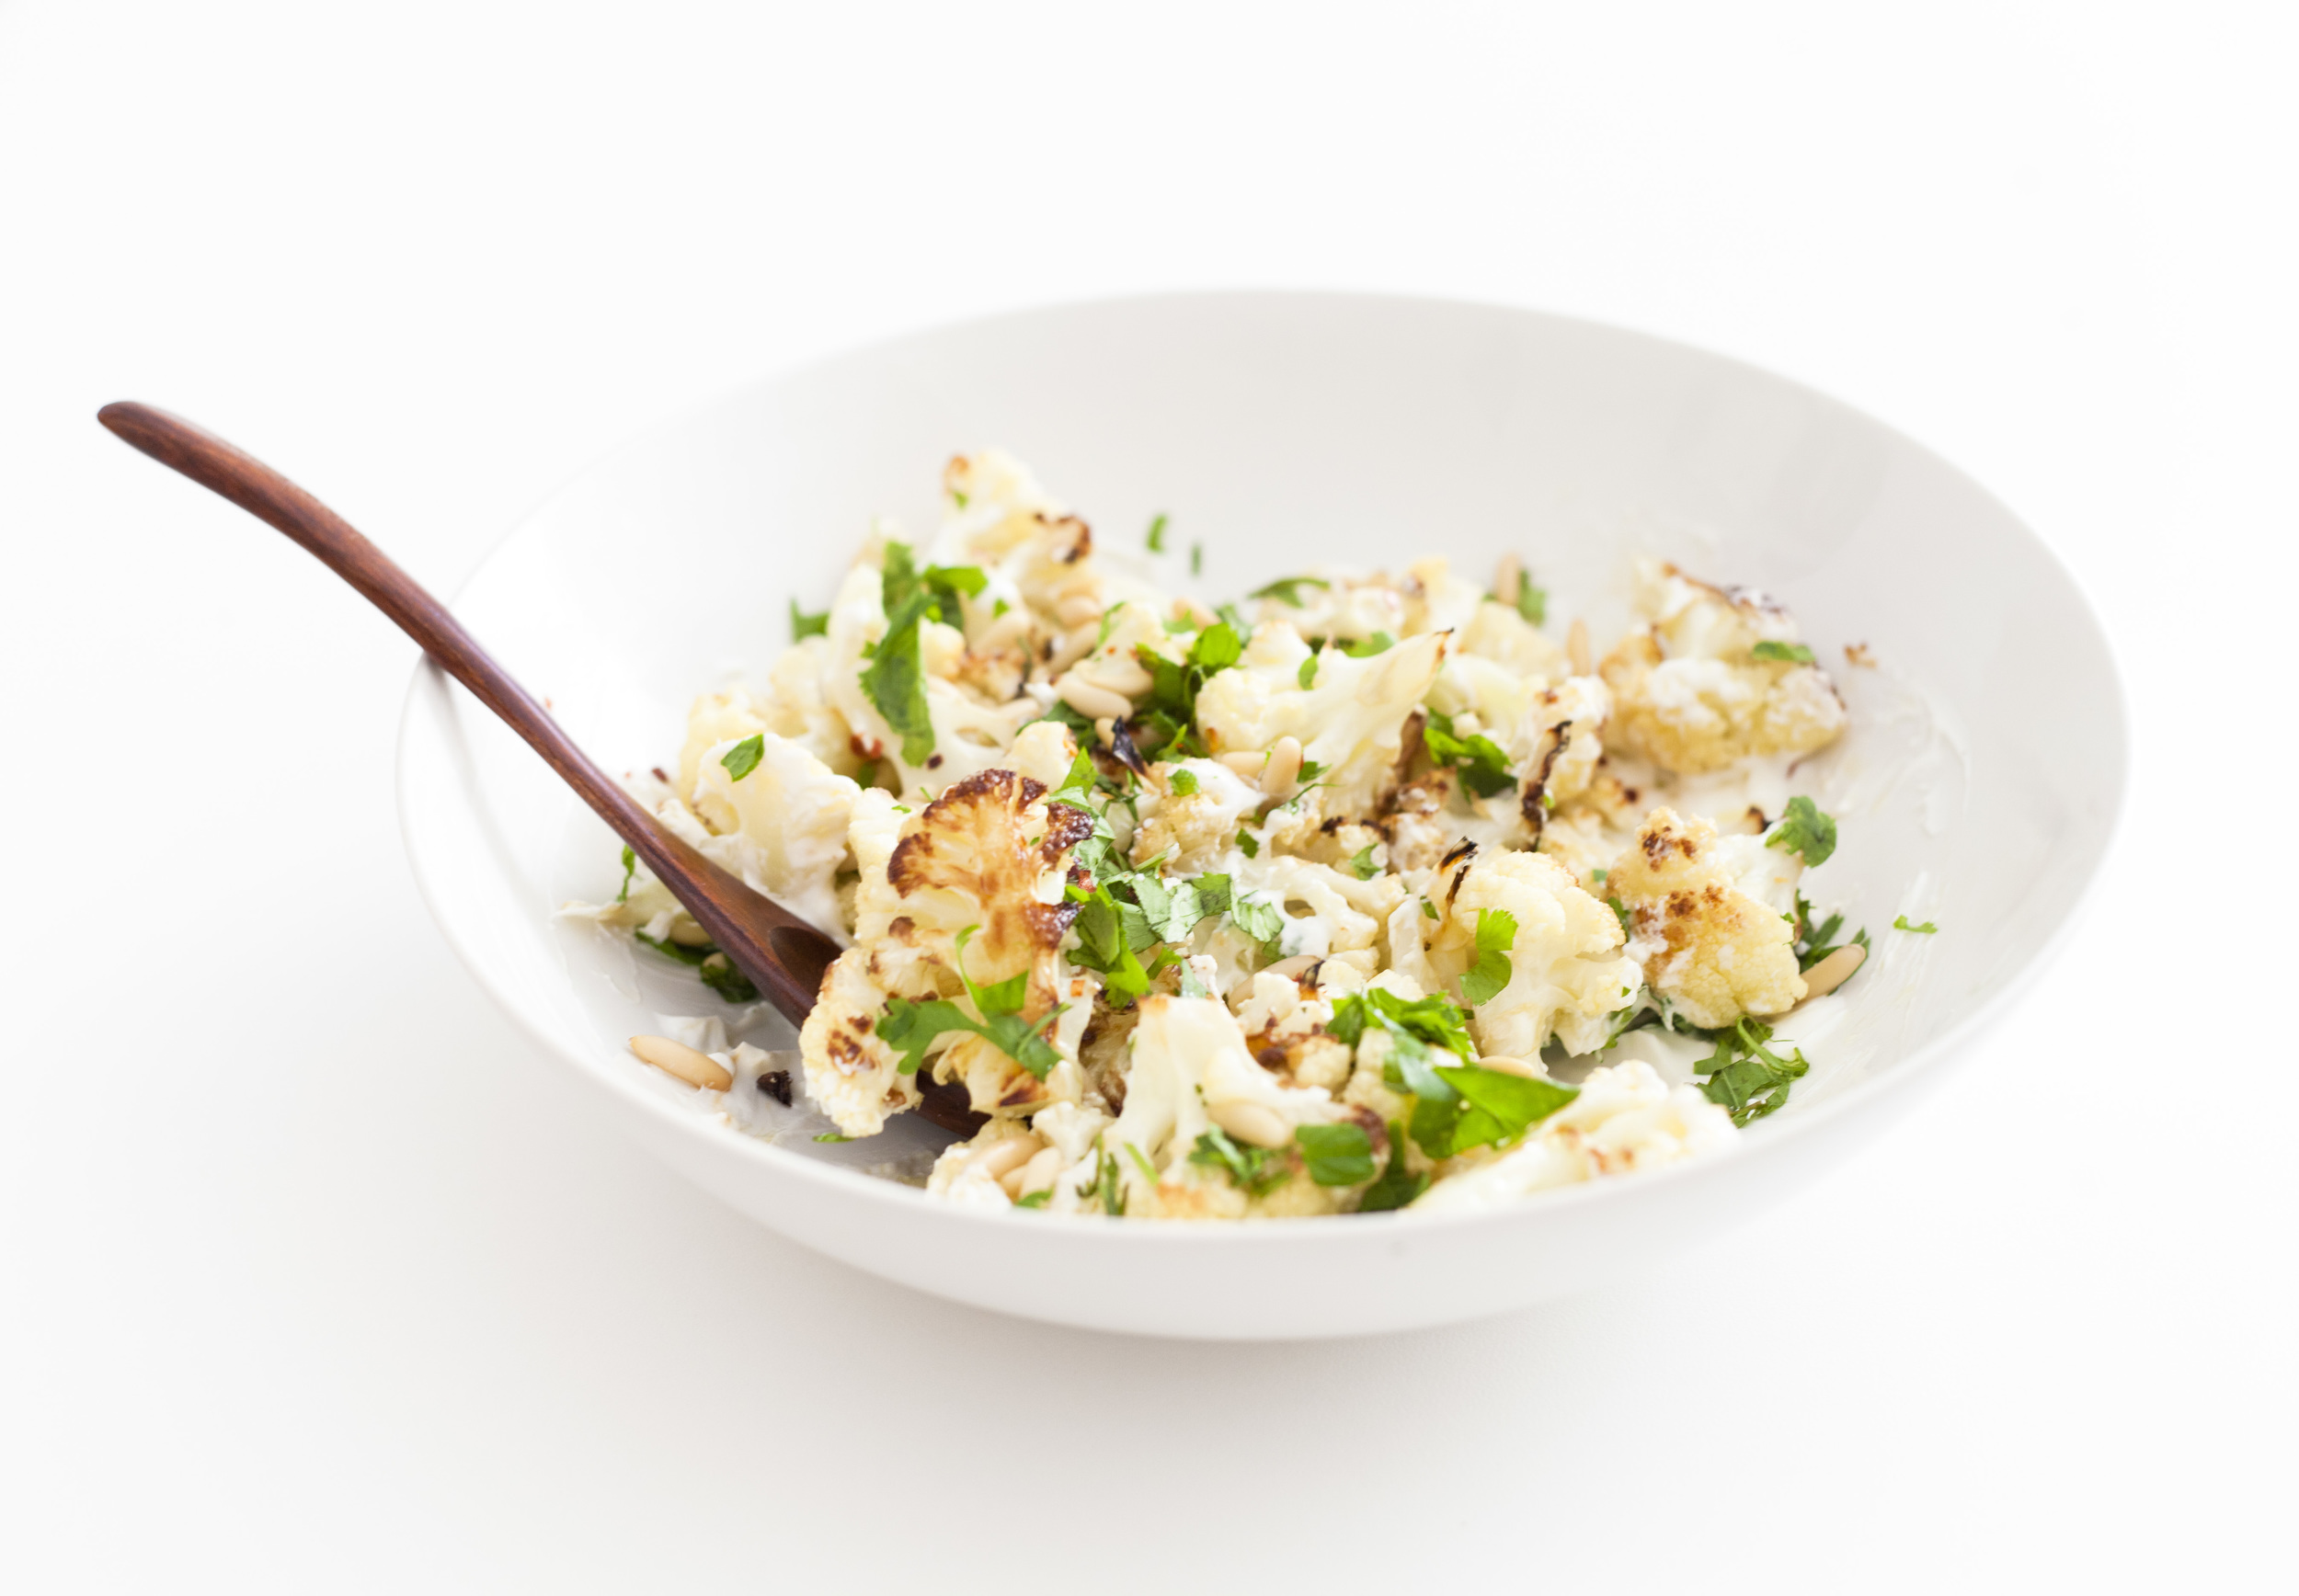 HERB ROASTED CAULIFLOWER WITH LEMON AND RED PEPPER FLAKES